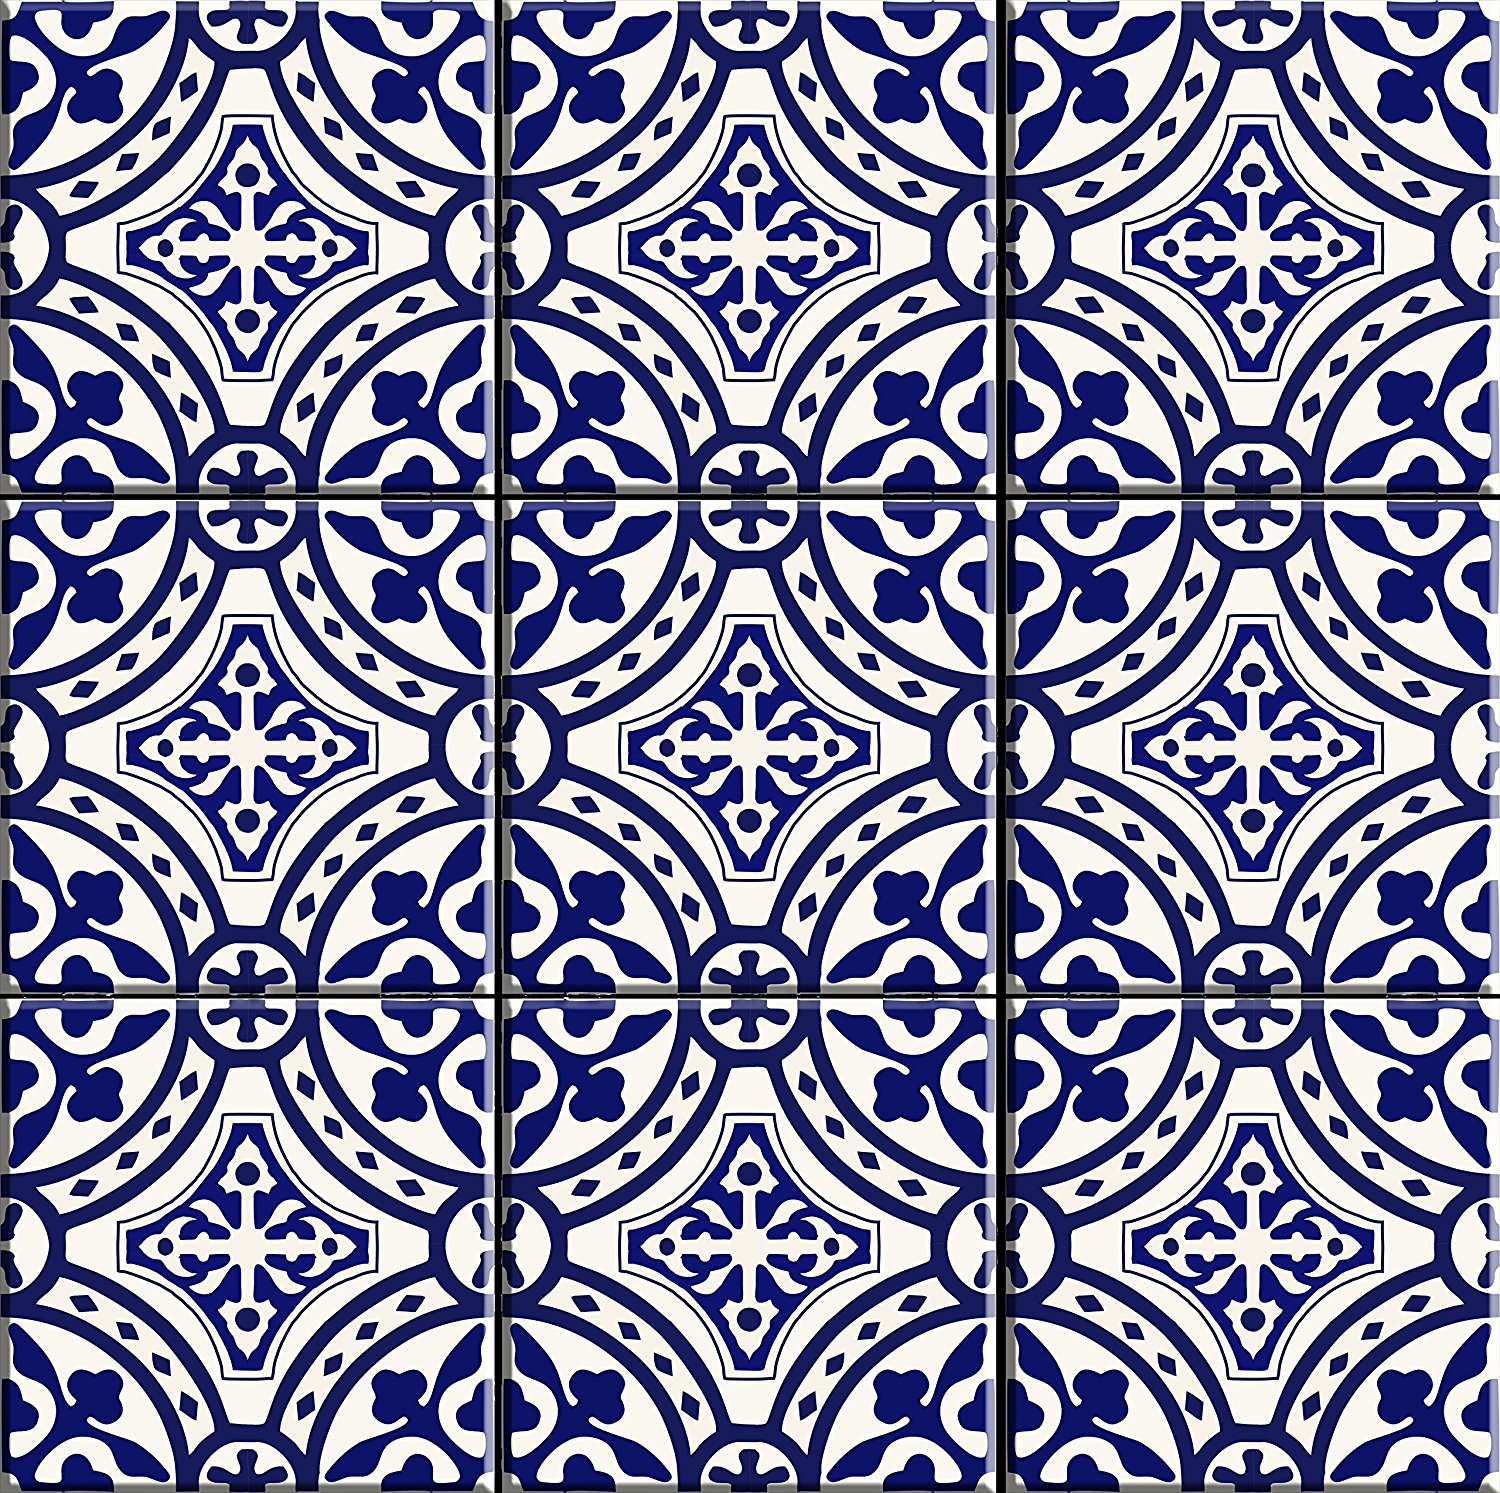 Portugal Inspired Tile Stickers Decor And Dine